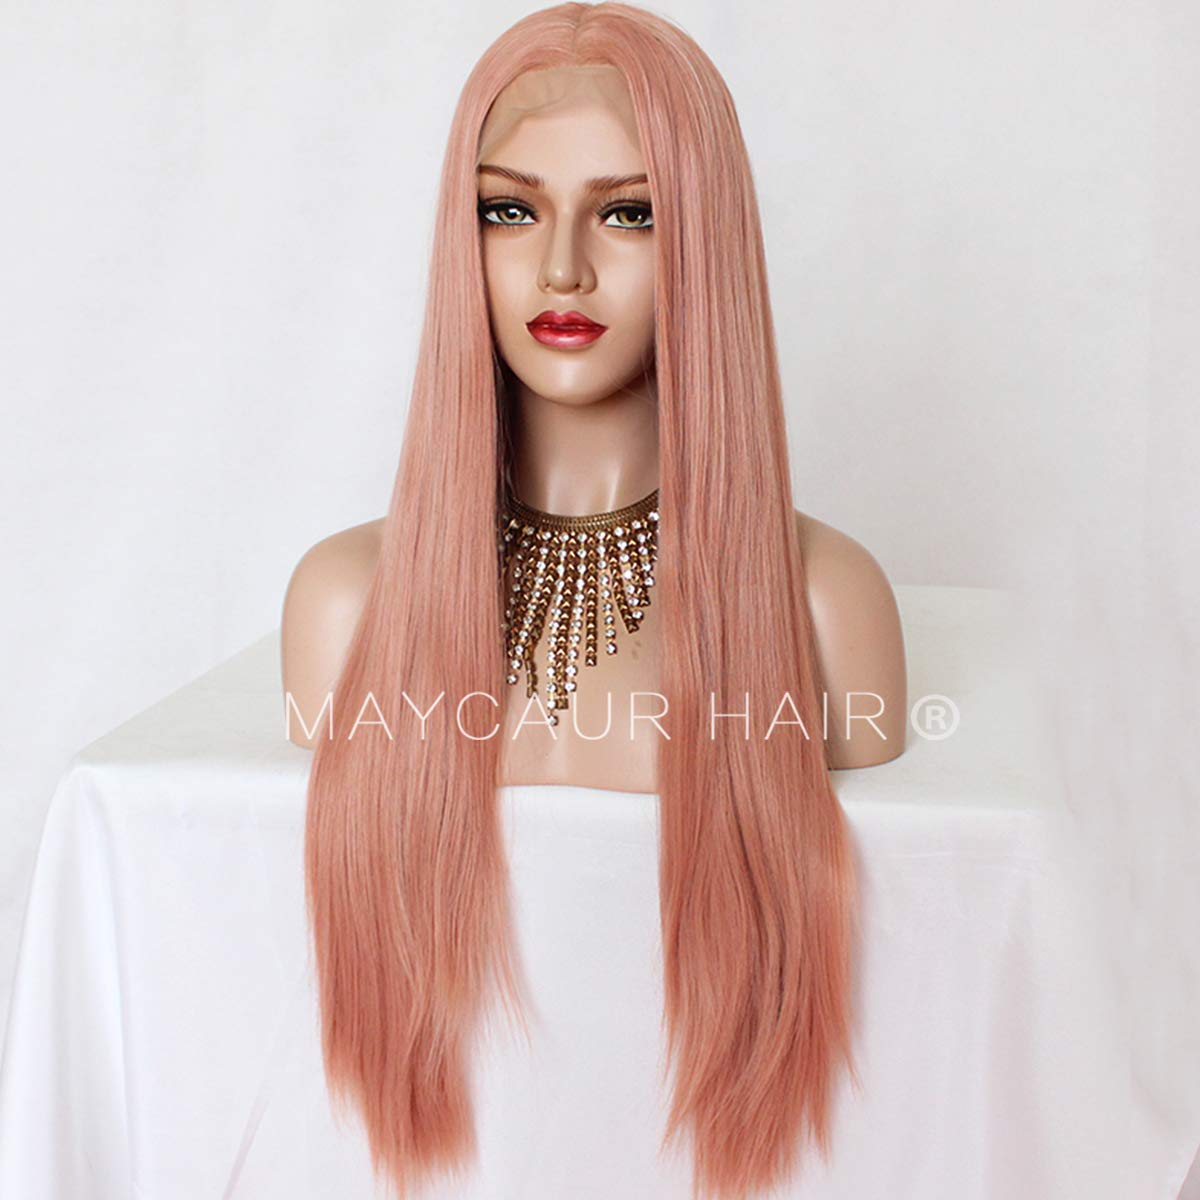 Sylvia Black Synthetic Lace Front Wig With Baby Hair Middle Part High Temperature Fiber Wig For White Women Natural Cool Color At All Costs Synthetic None-lacewigs Hair Extensions & Wigs